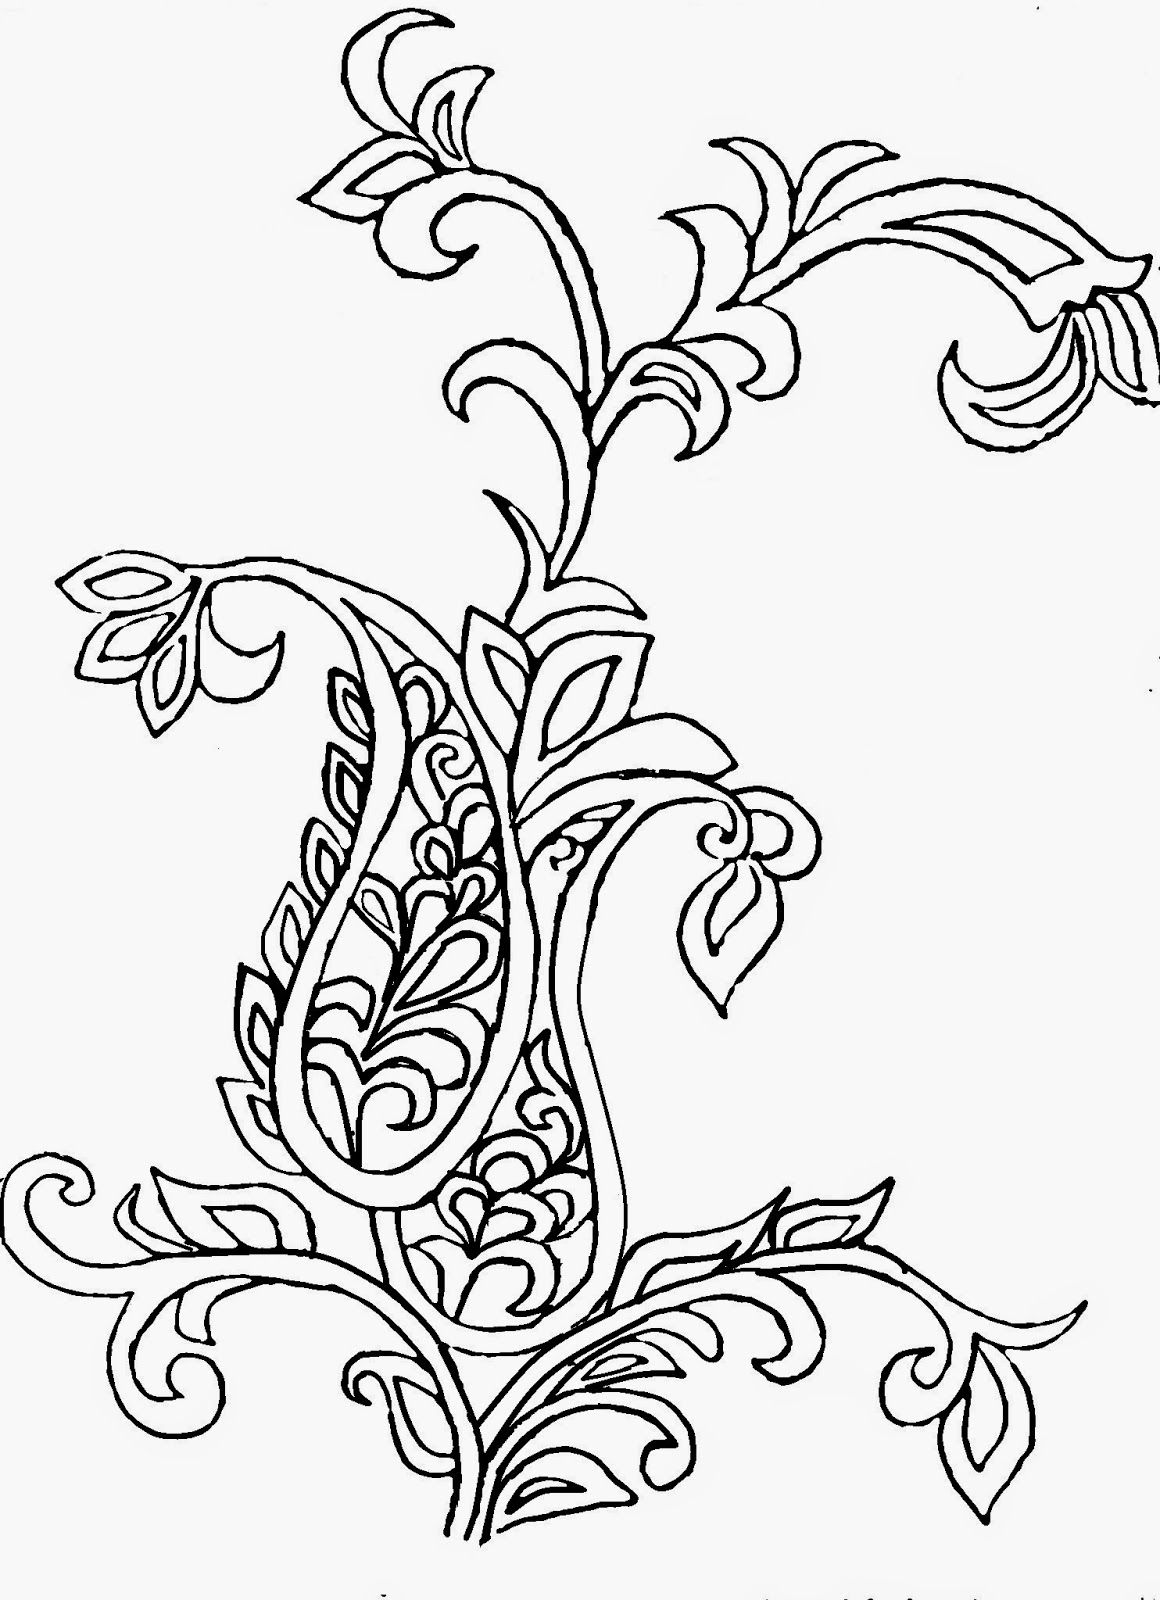 Paisley design for embroidery or painting. | Bordado | Pinterest ...